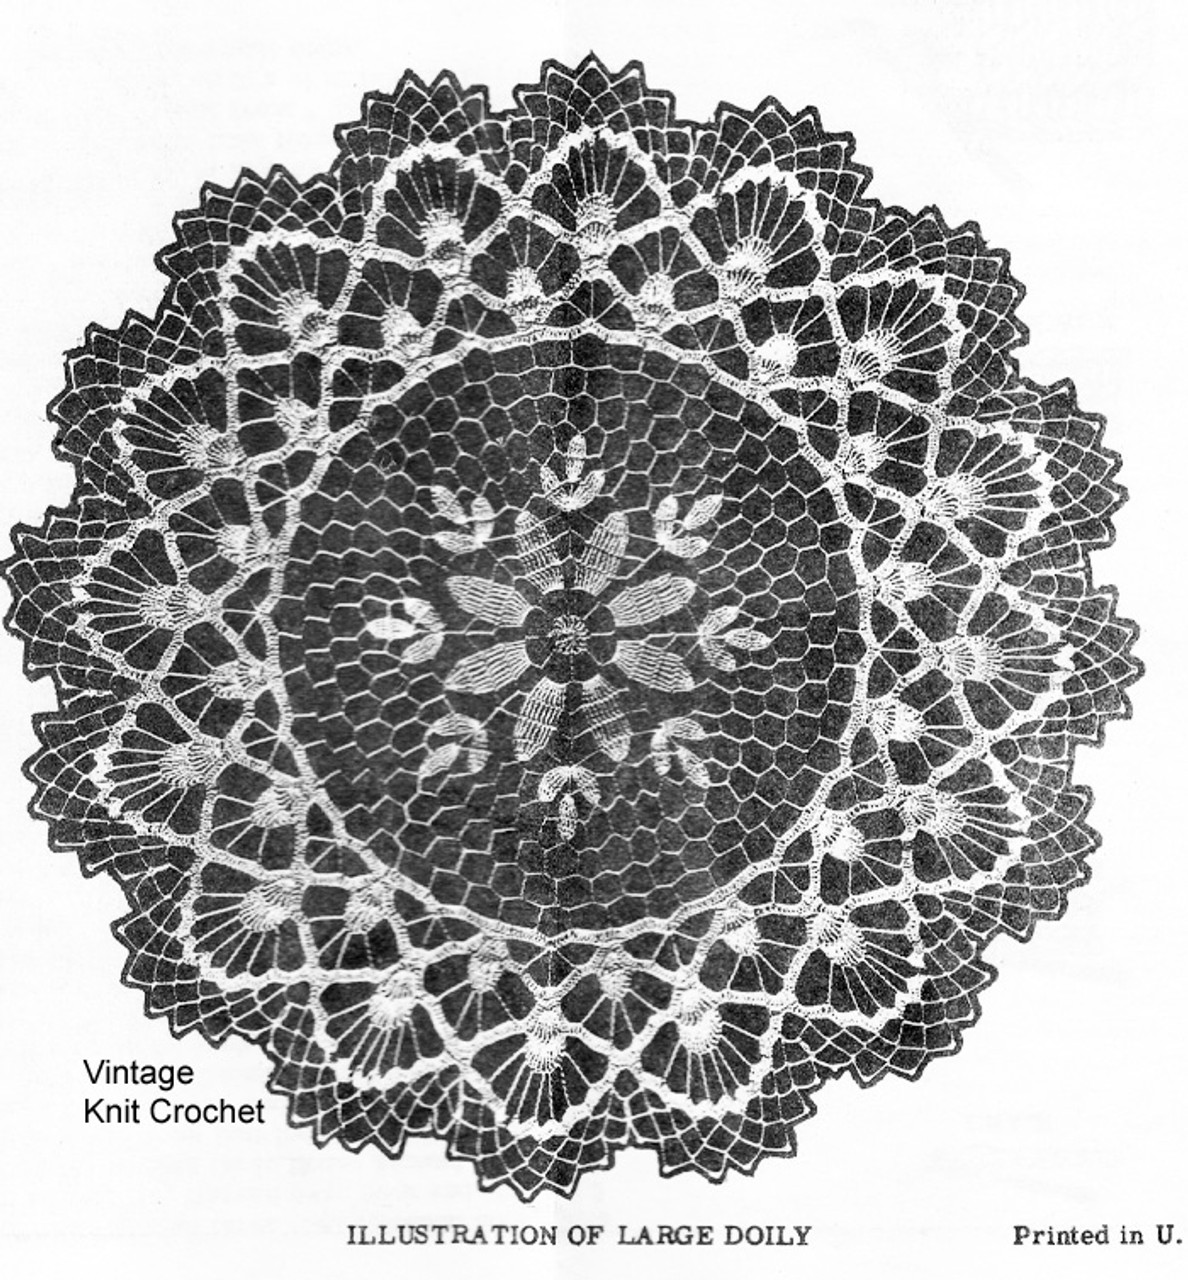 Crocheted Lace Doily Pattern Detail, Design 539